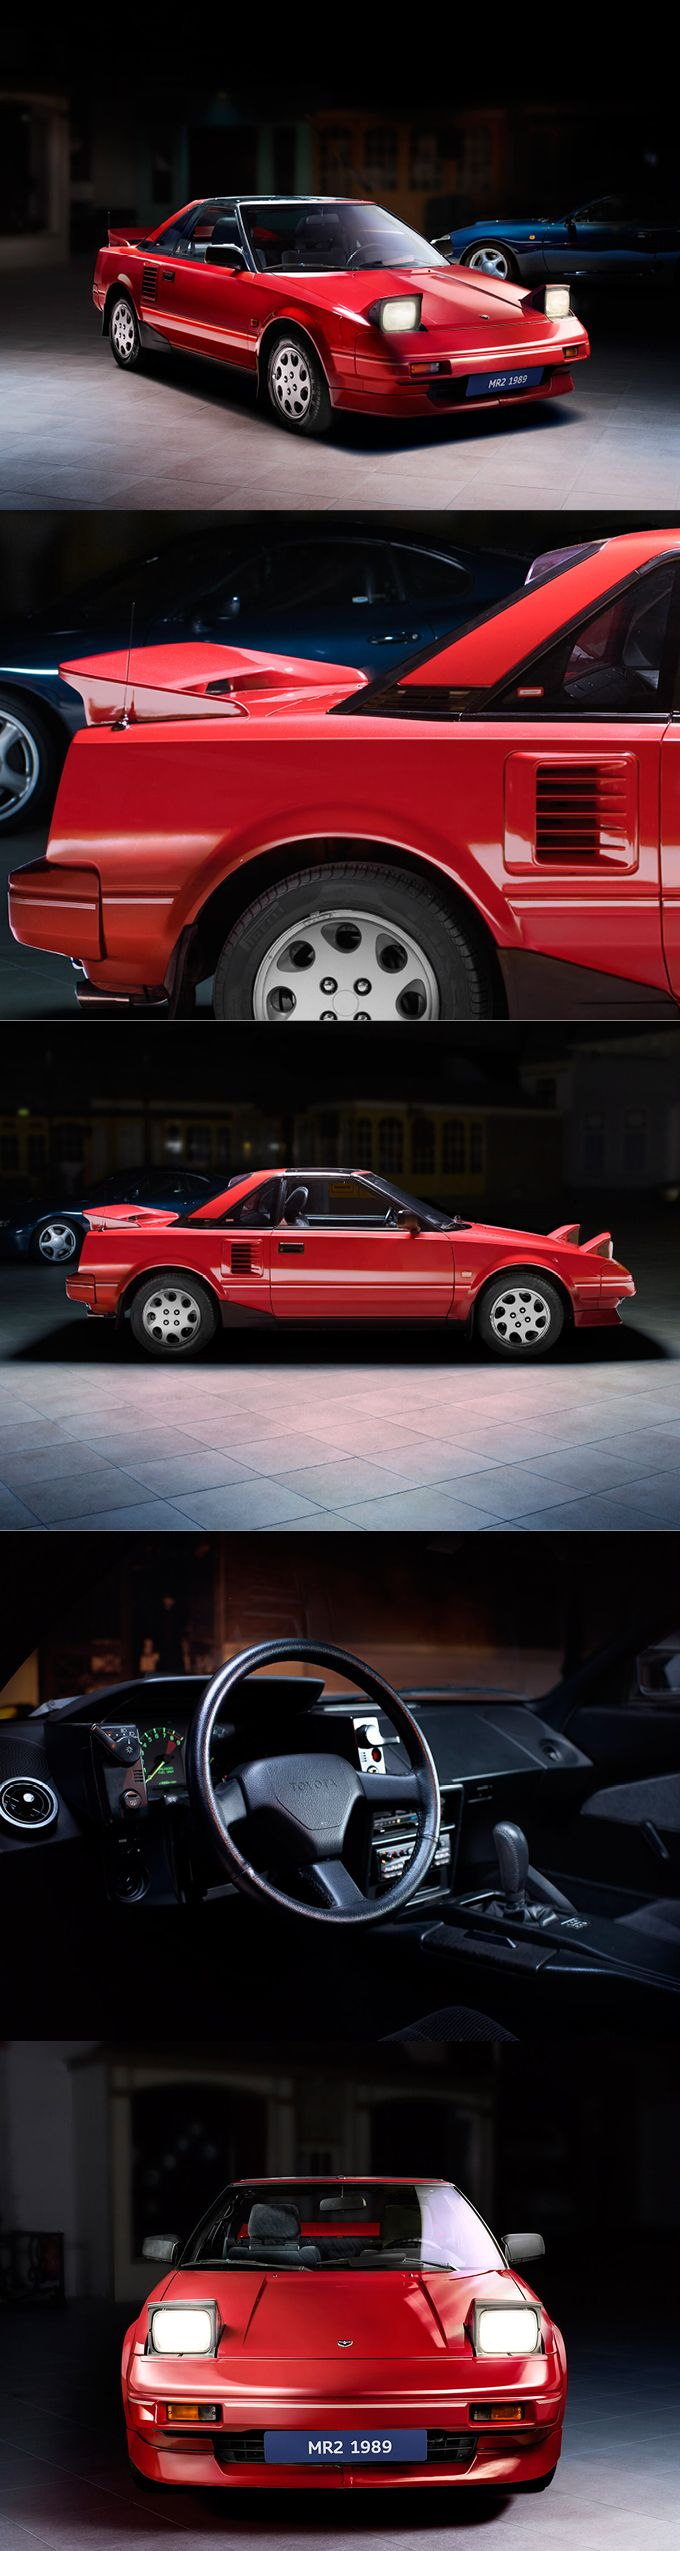 1989 Toyota MR2 / Japan / red / 17-302